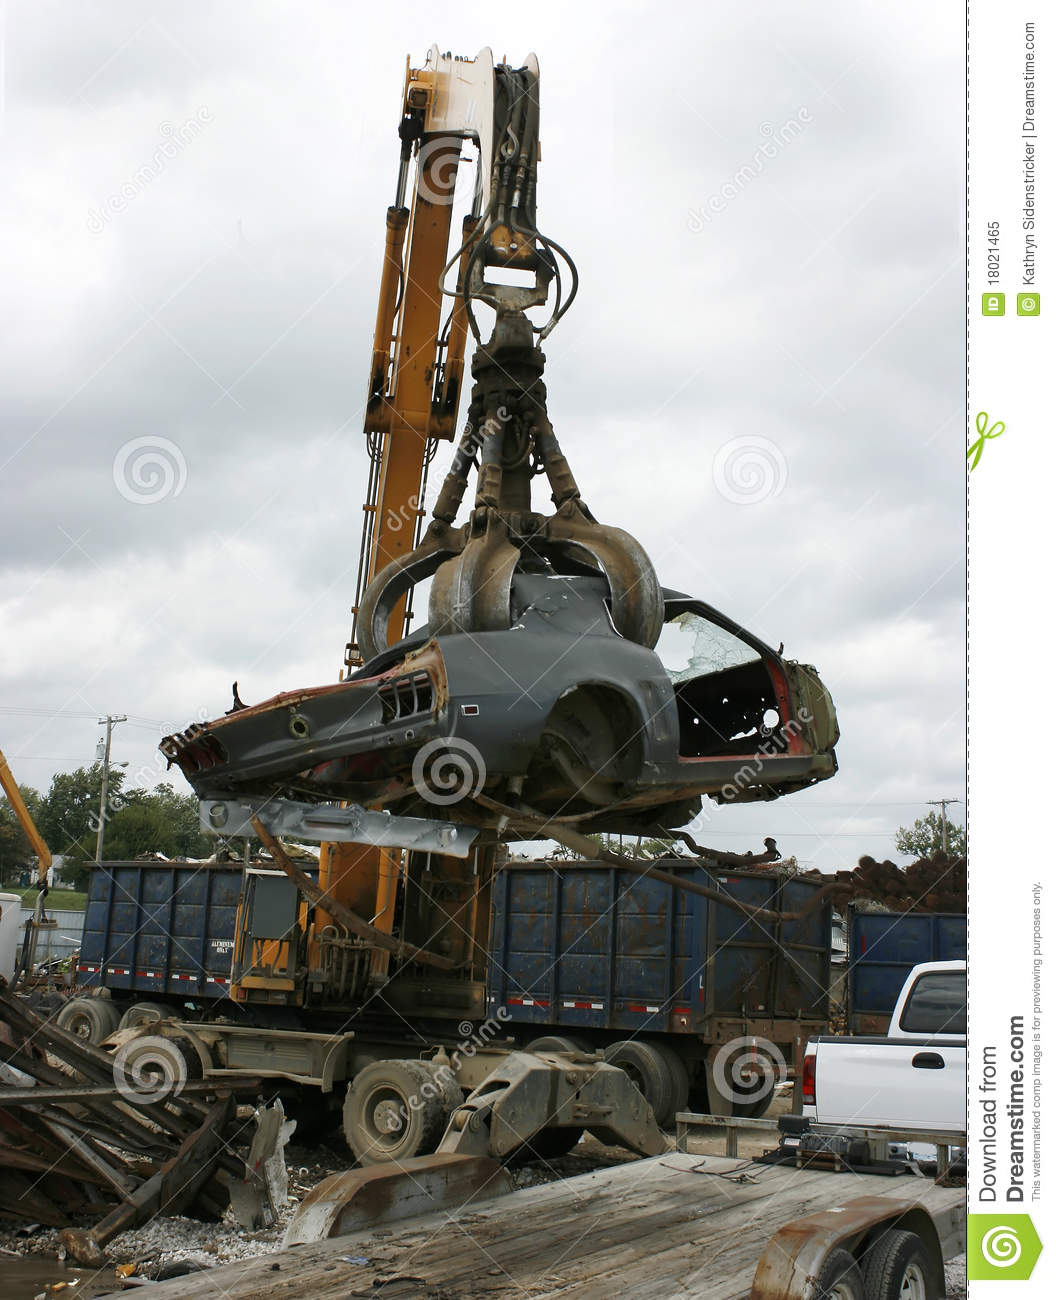 A 1969 ford mustang is picked up by a grappling crane for recycling or crushing